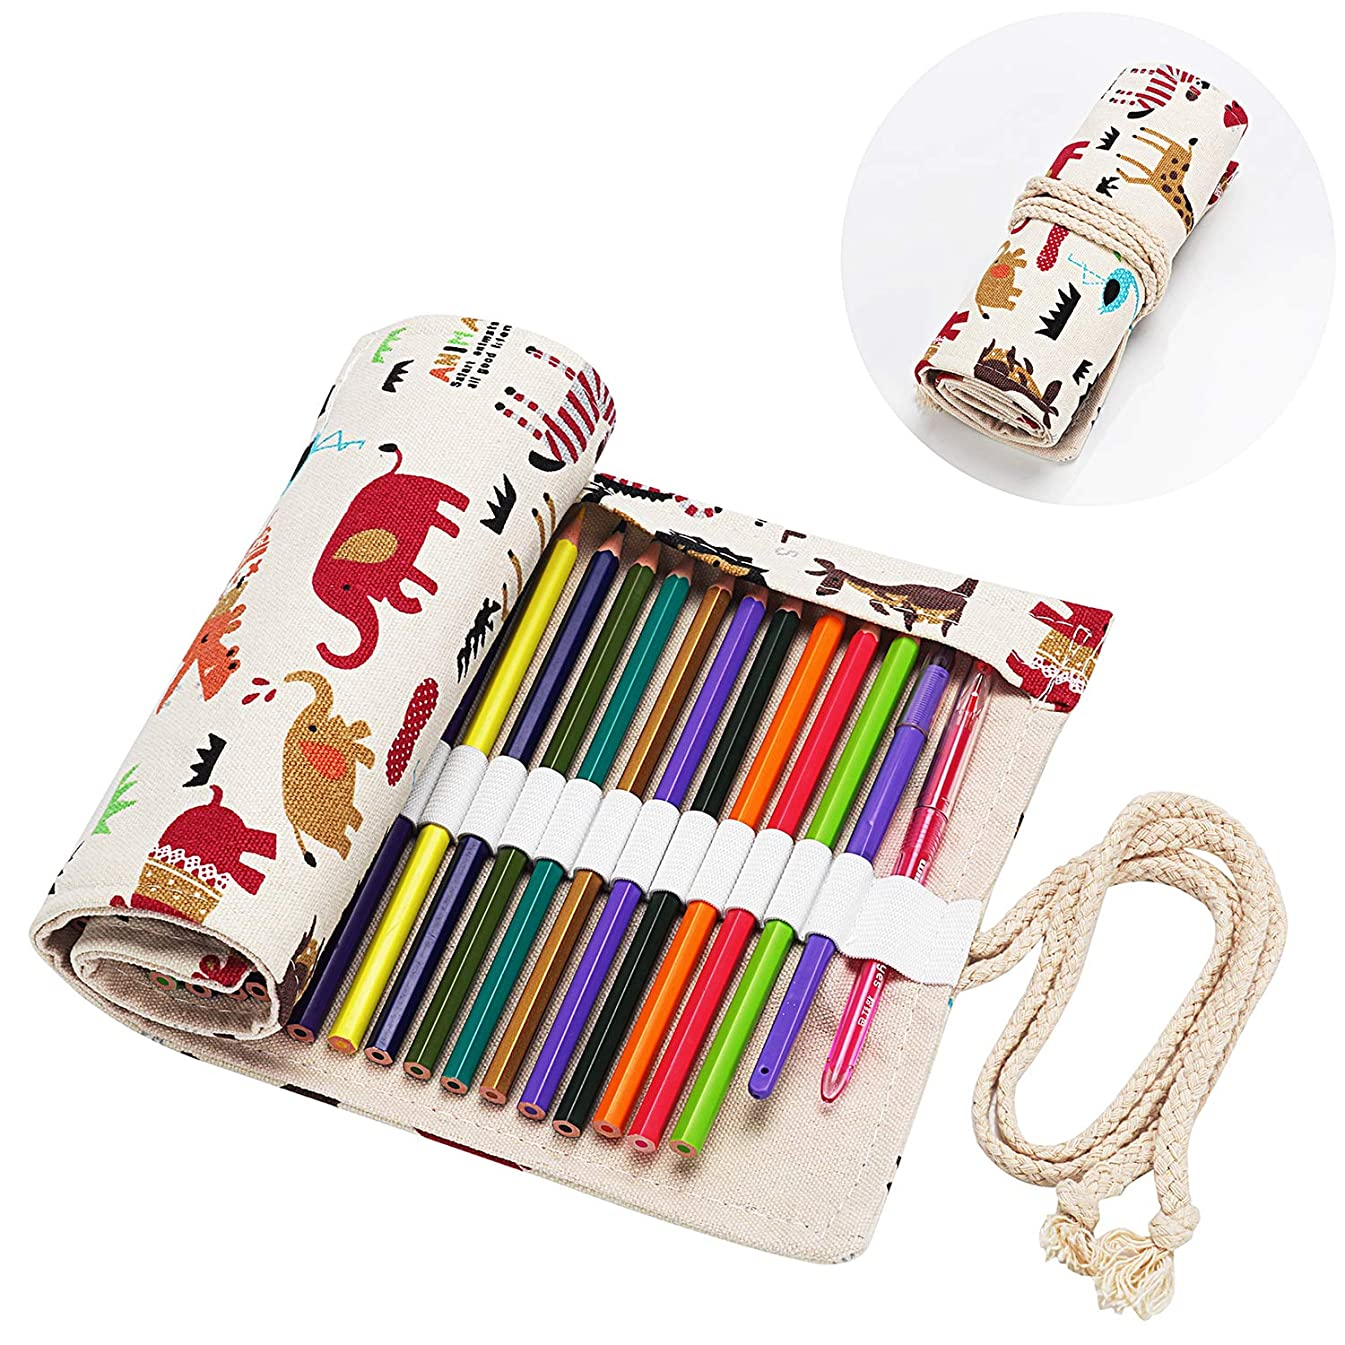 Molshine Handmade Canvas Flowers Style Colored Pencils Wrap 36/48/72 Holes, Roll up Pen Holder Case Cute and Multi-Purpose (NO Pencil Included) (Zoo, 72Holes)